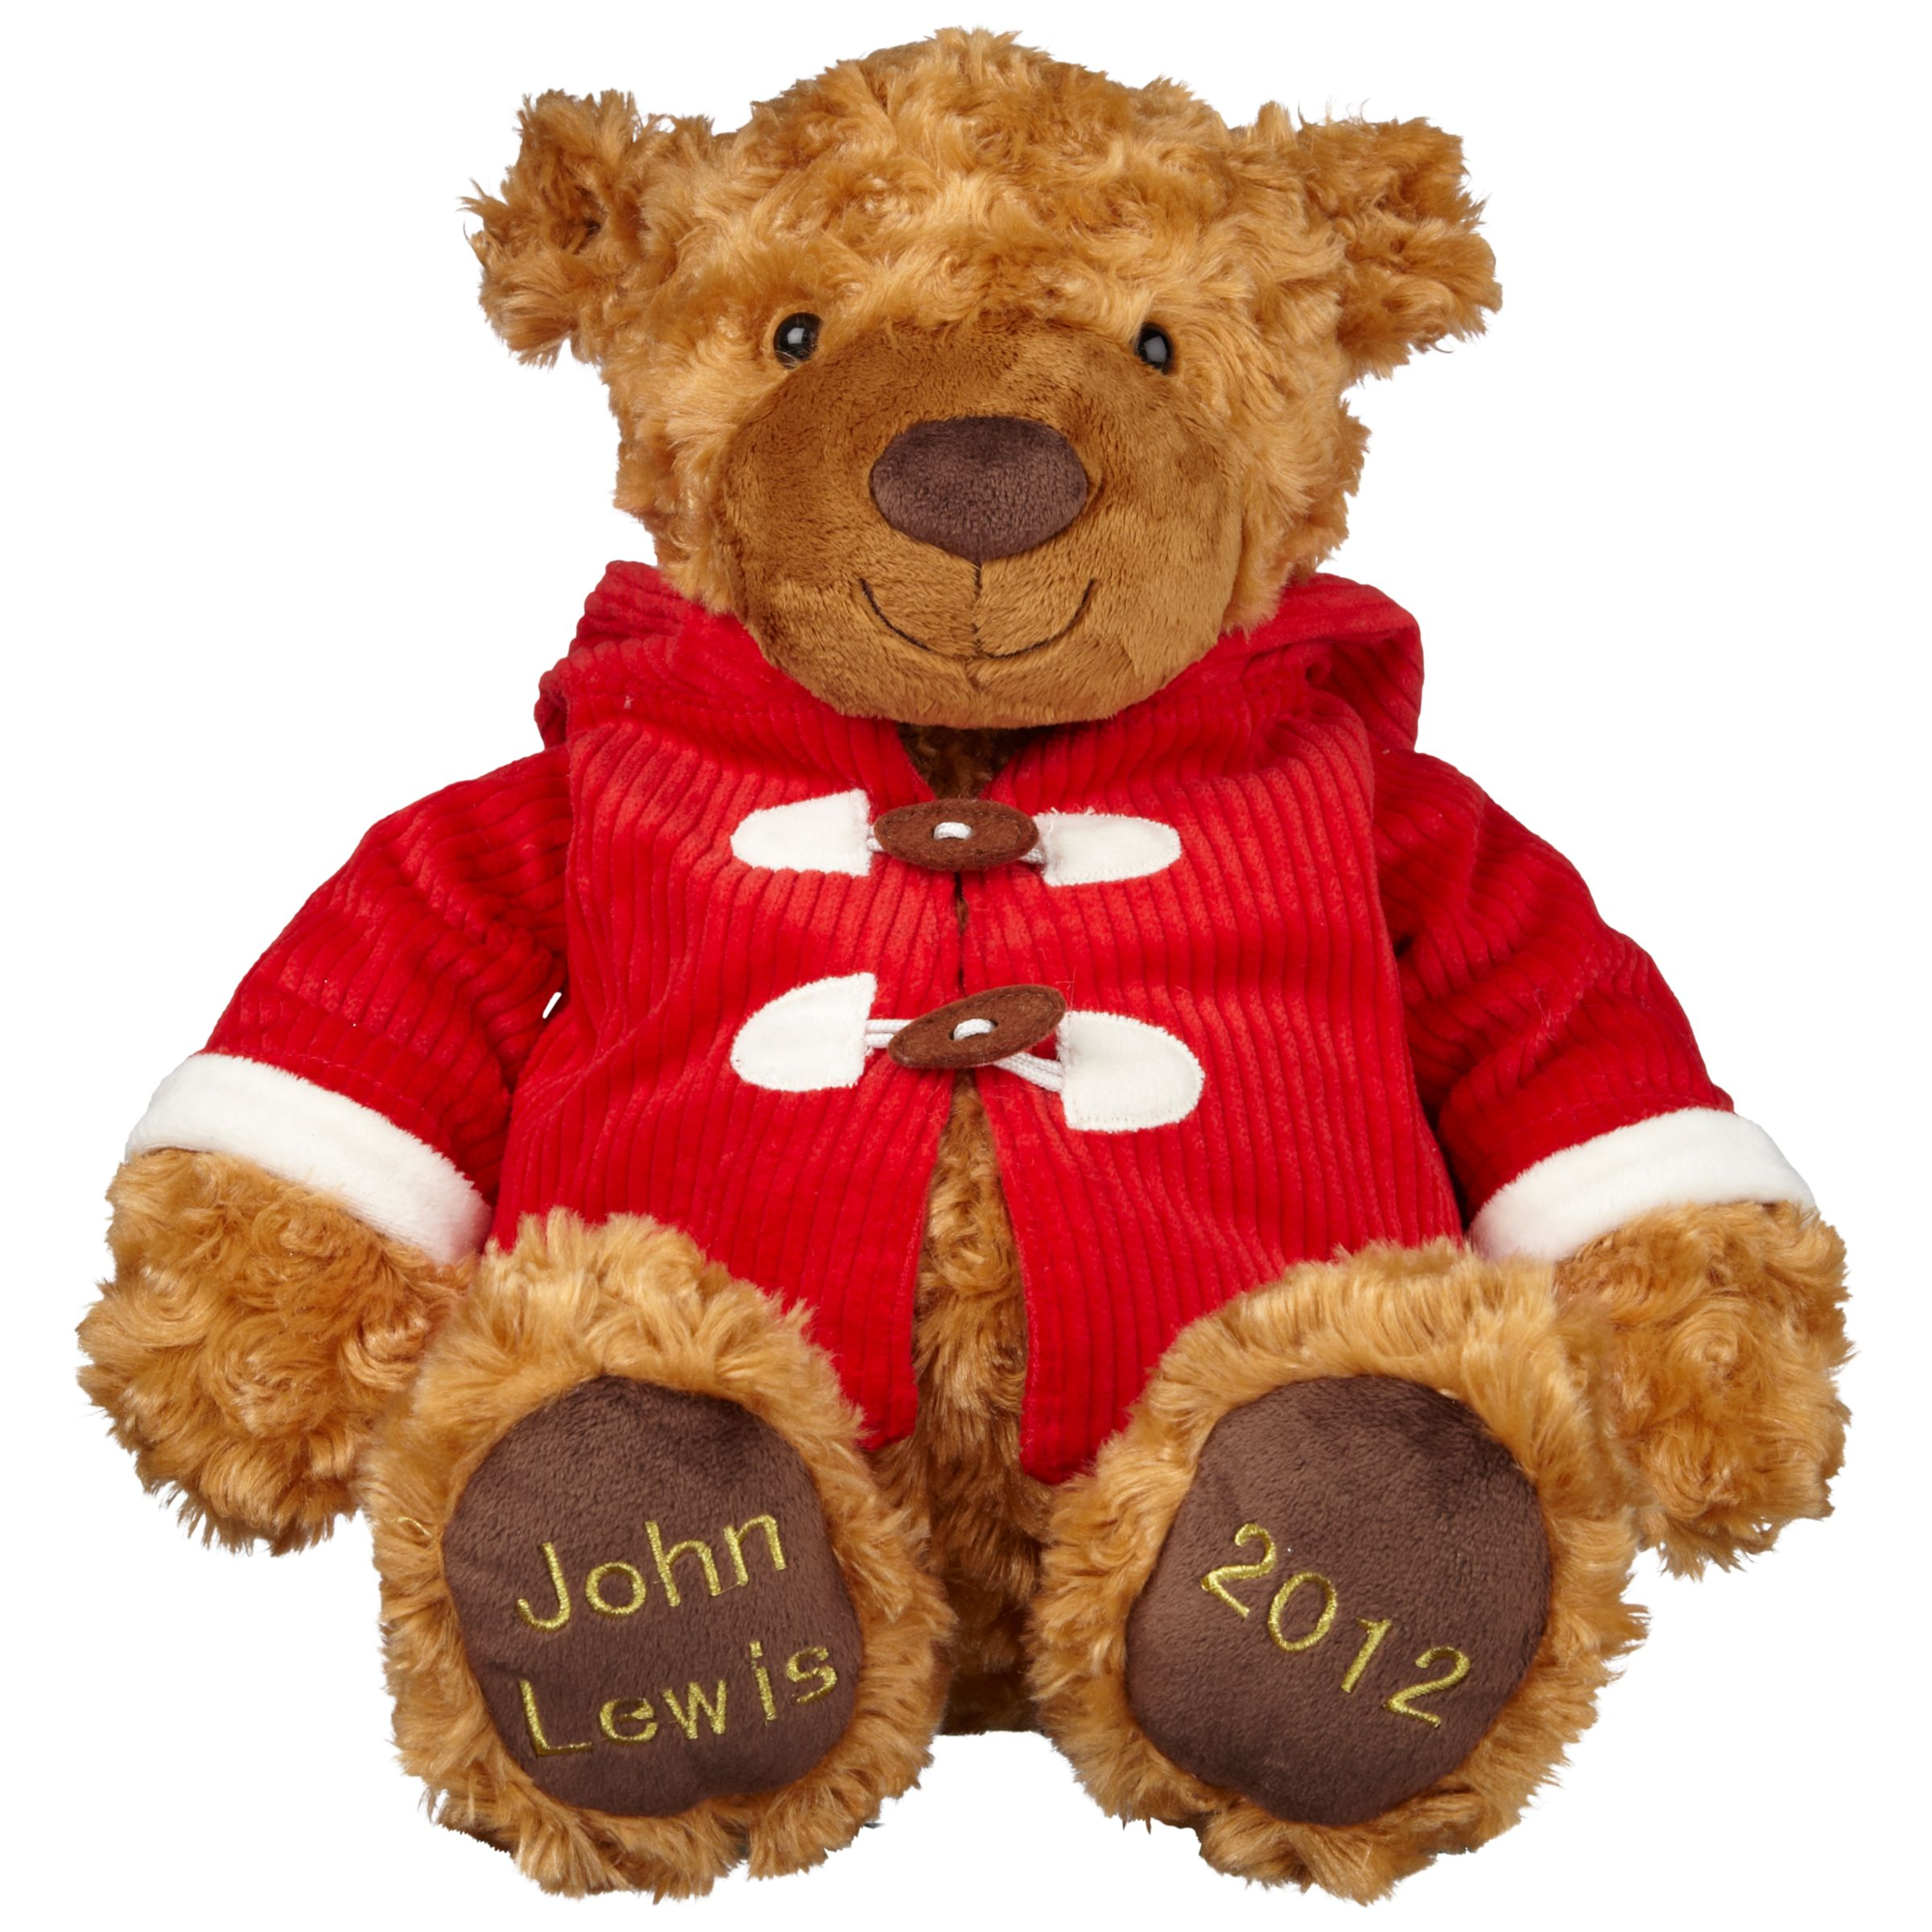 John Lewis Lewis Christmas Bear Large, Brown/Red